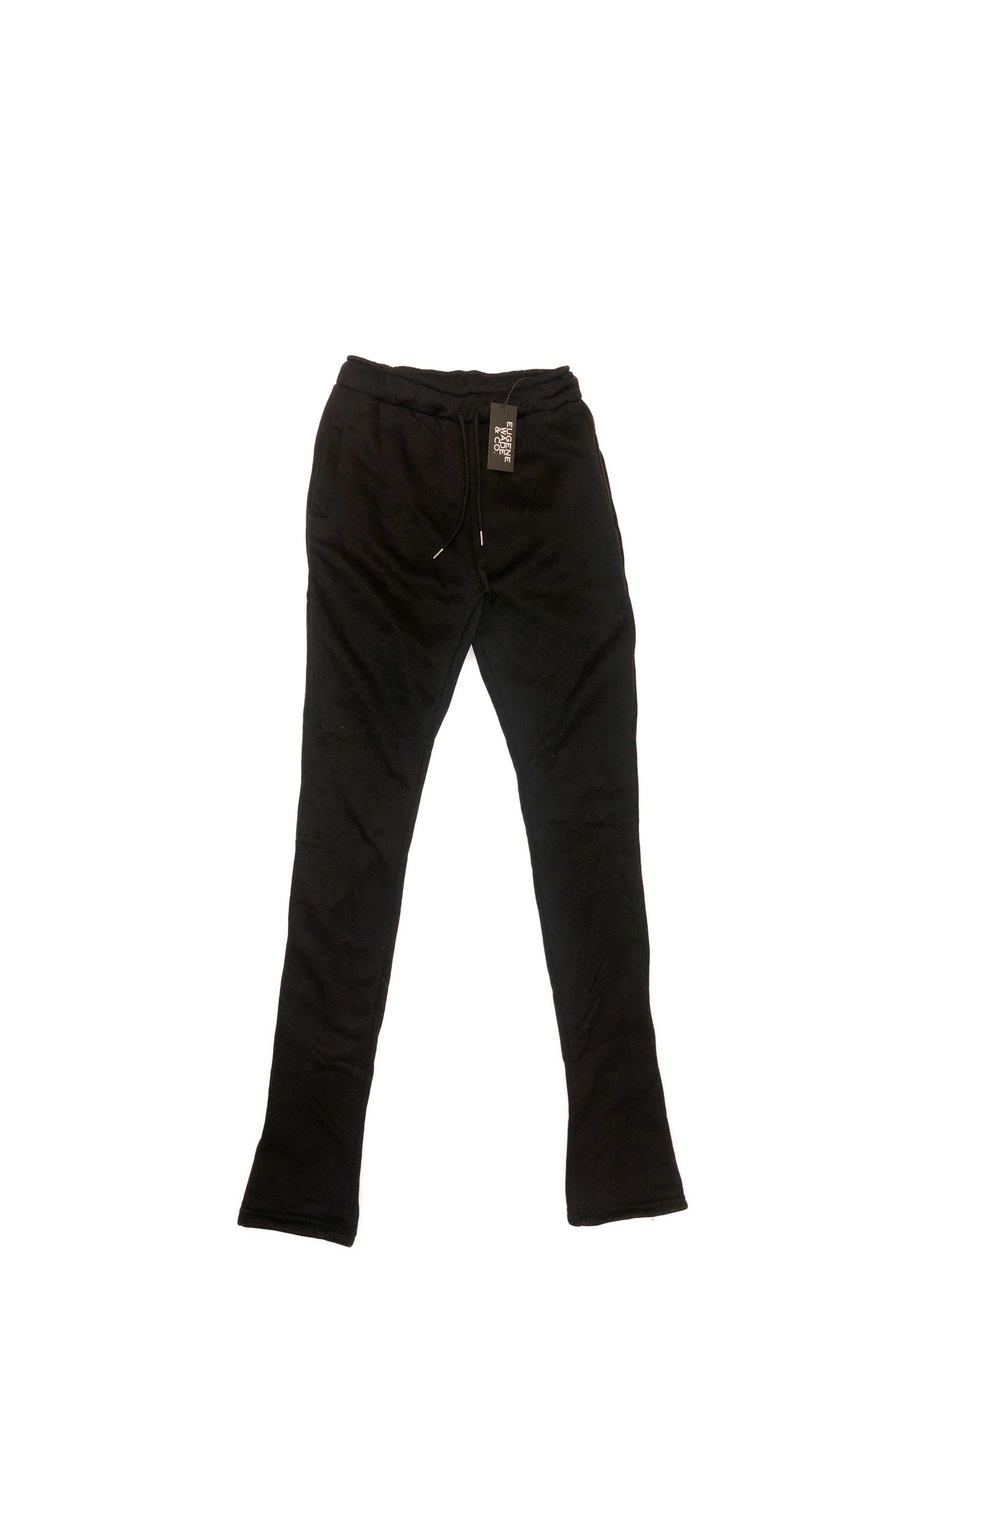 STACKED PANTS (Black)